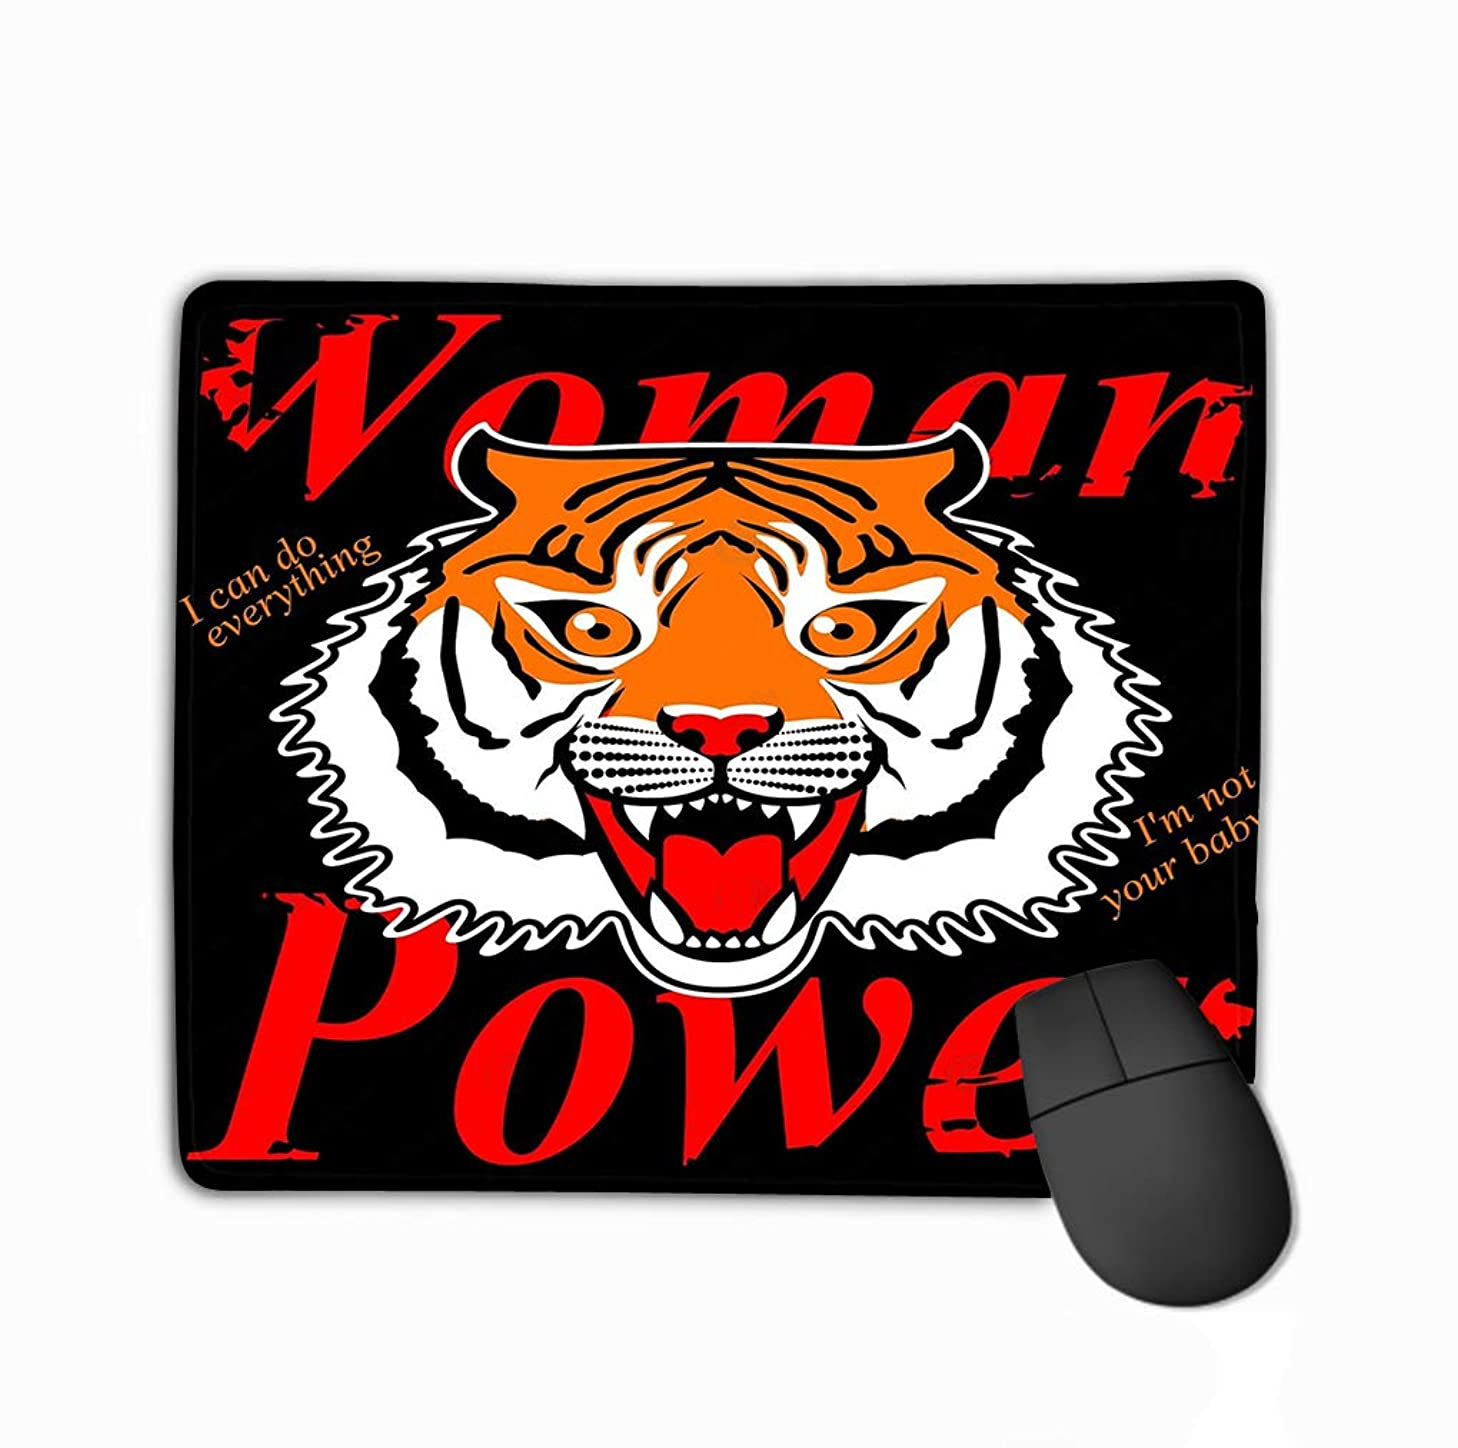 Mouse Pad Japanese Style Tiger Embroidery Patch Graphic Other uses Born to be Wild Tiger Graphic Rectangle Rubber Mousepad 11.81 X 9.84 Inch